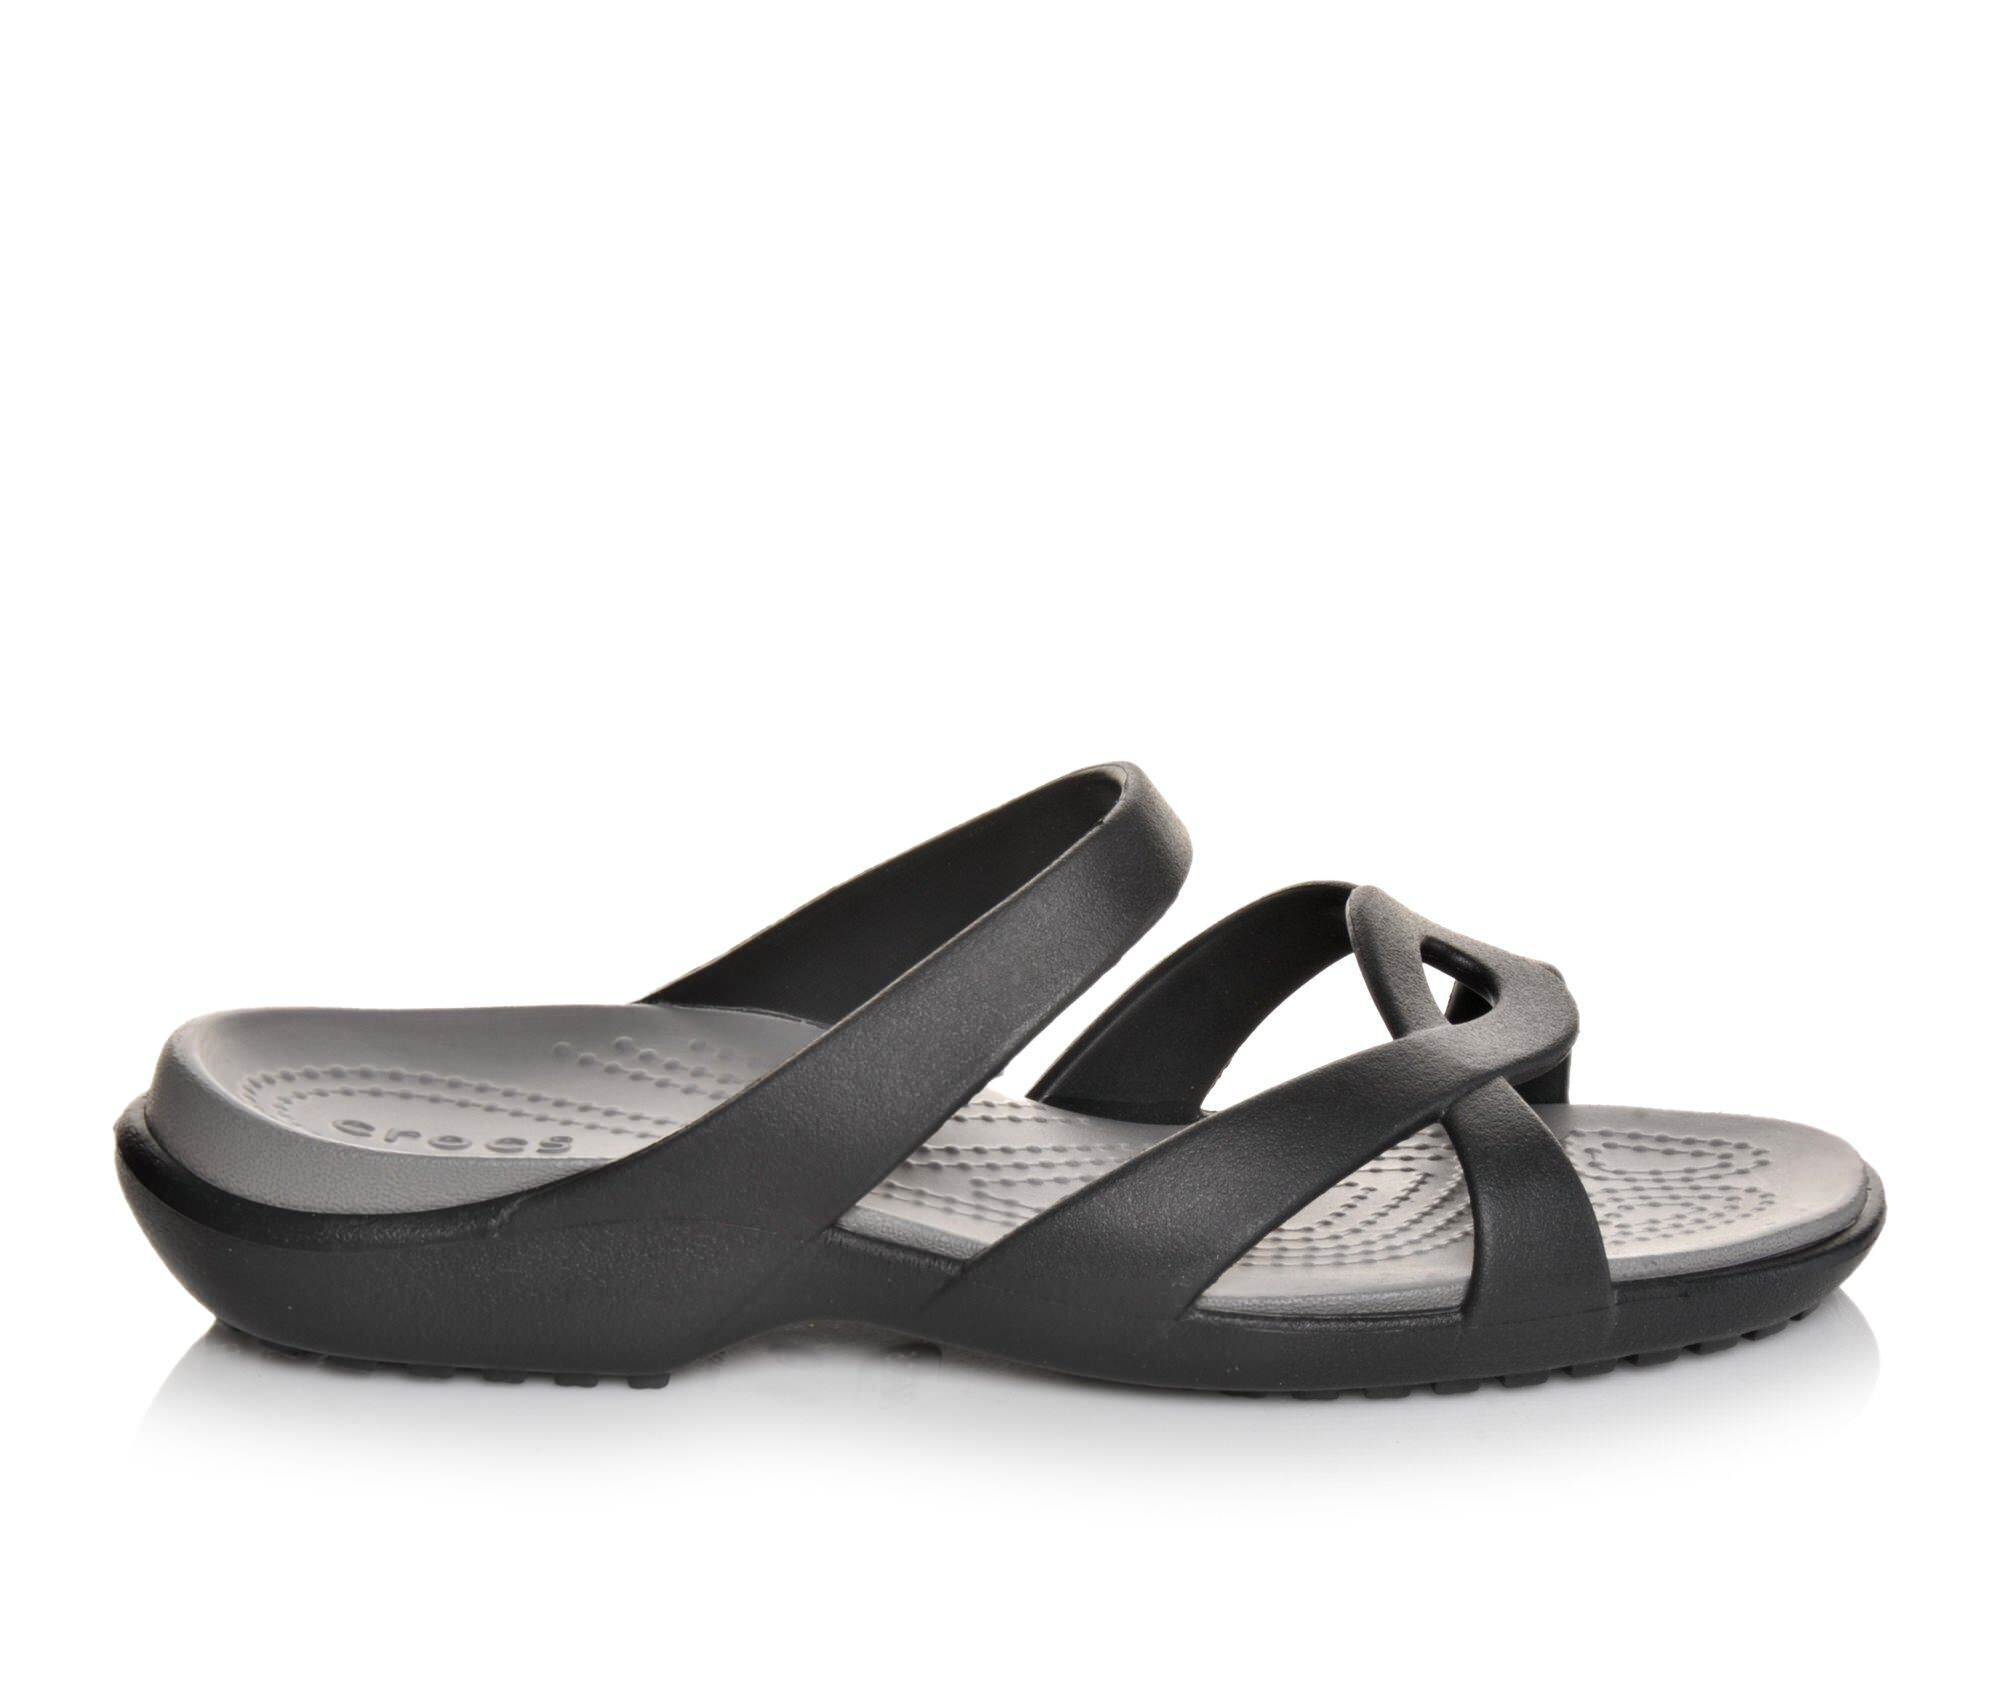 Images. Women's Crocs Meleen Twist